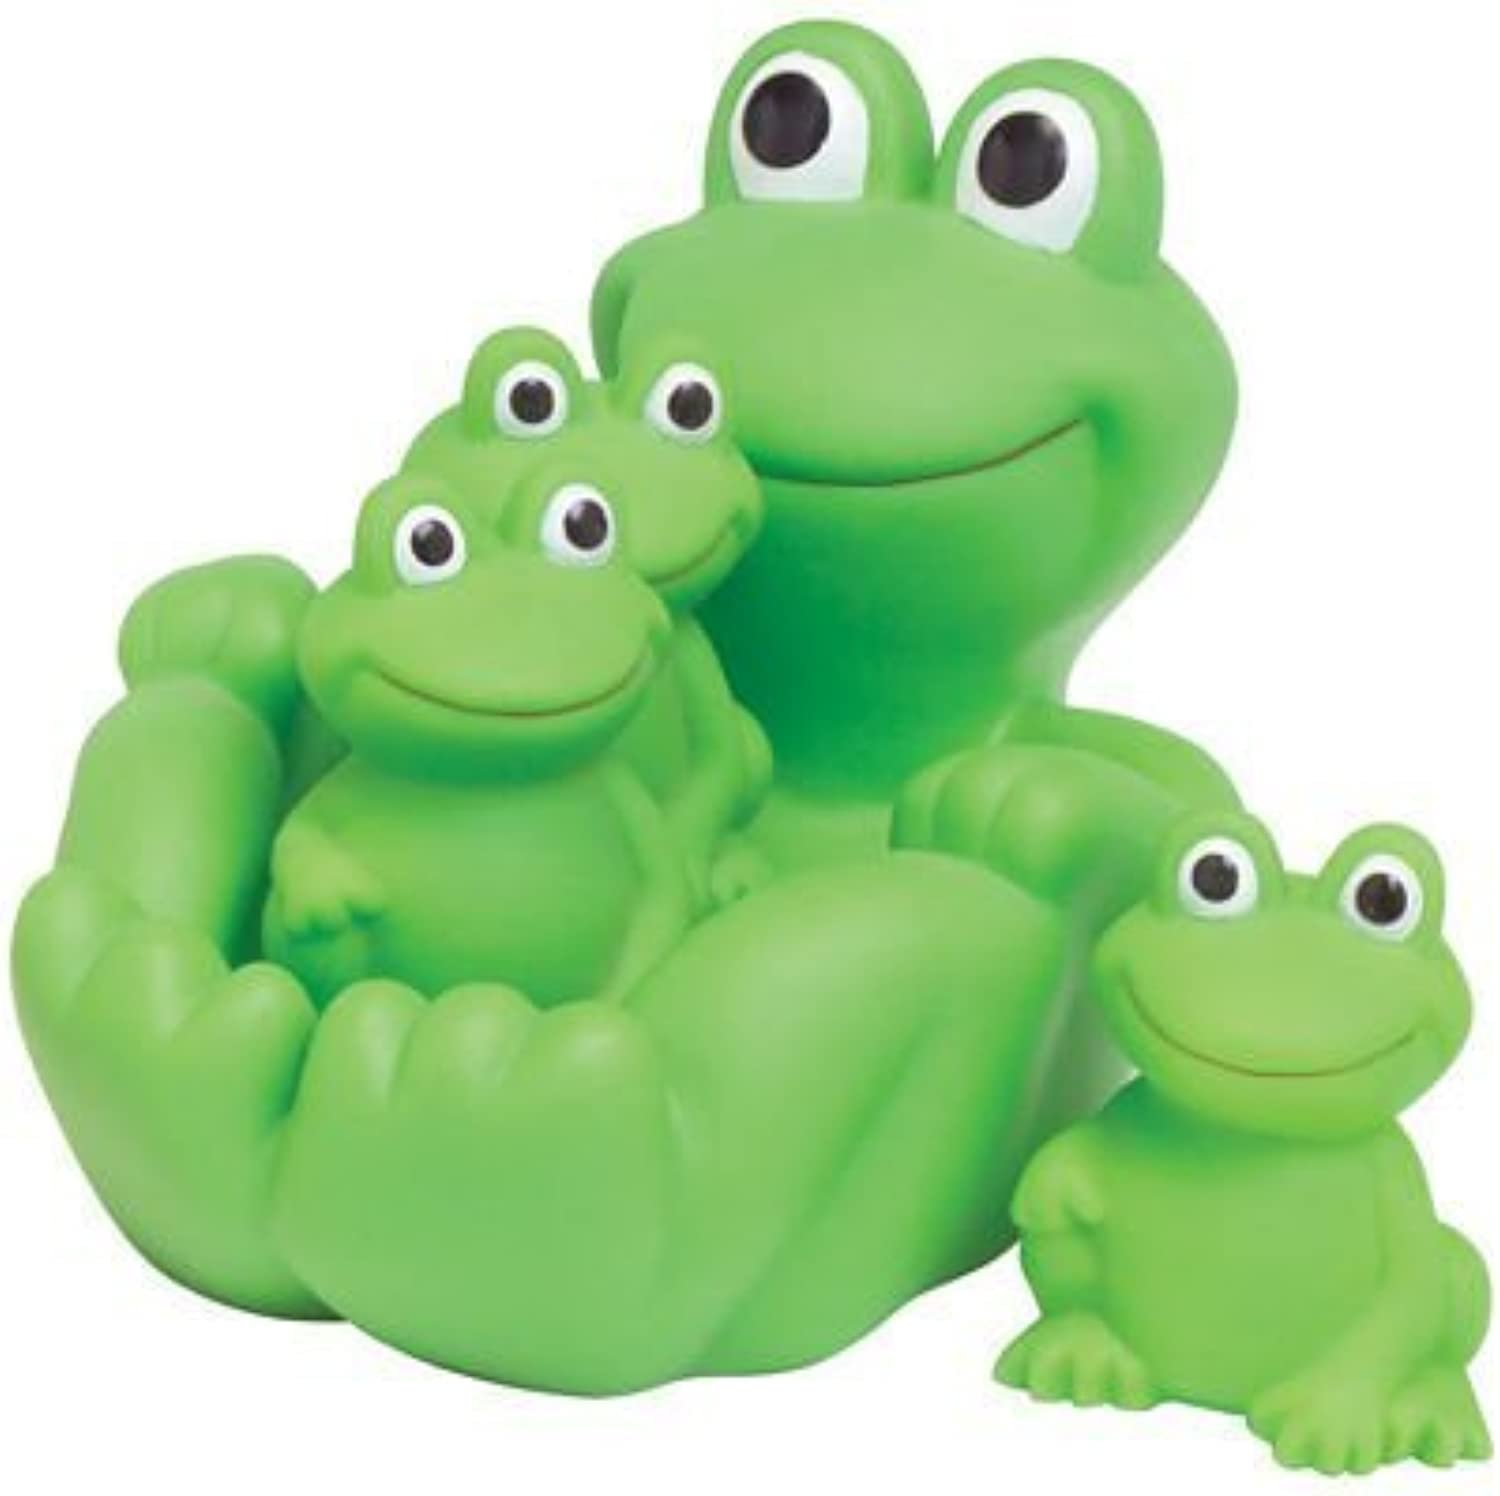 Frog Family Bath Toy  Floating Fun  by D&D Distributing [Toy]